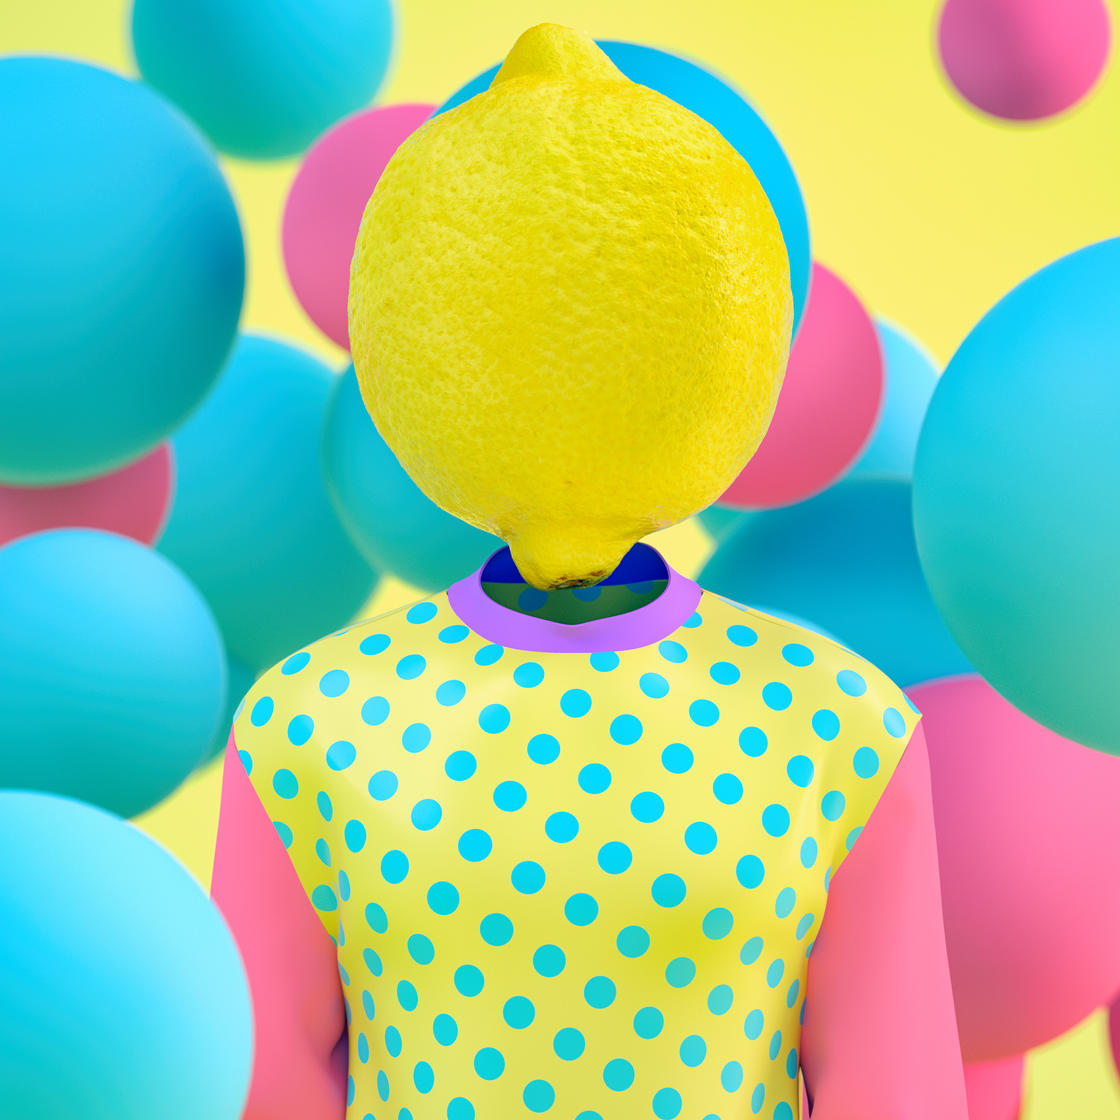 Fake Face – The surreal and colorful creations of Kota Yamaji